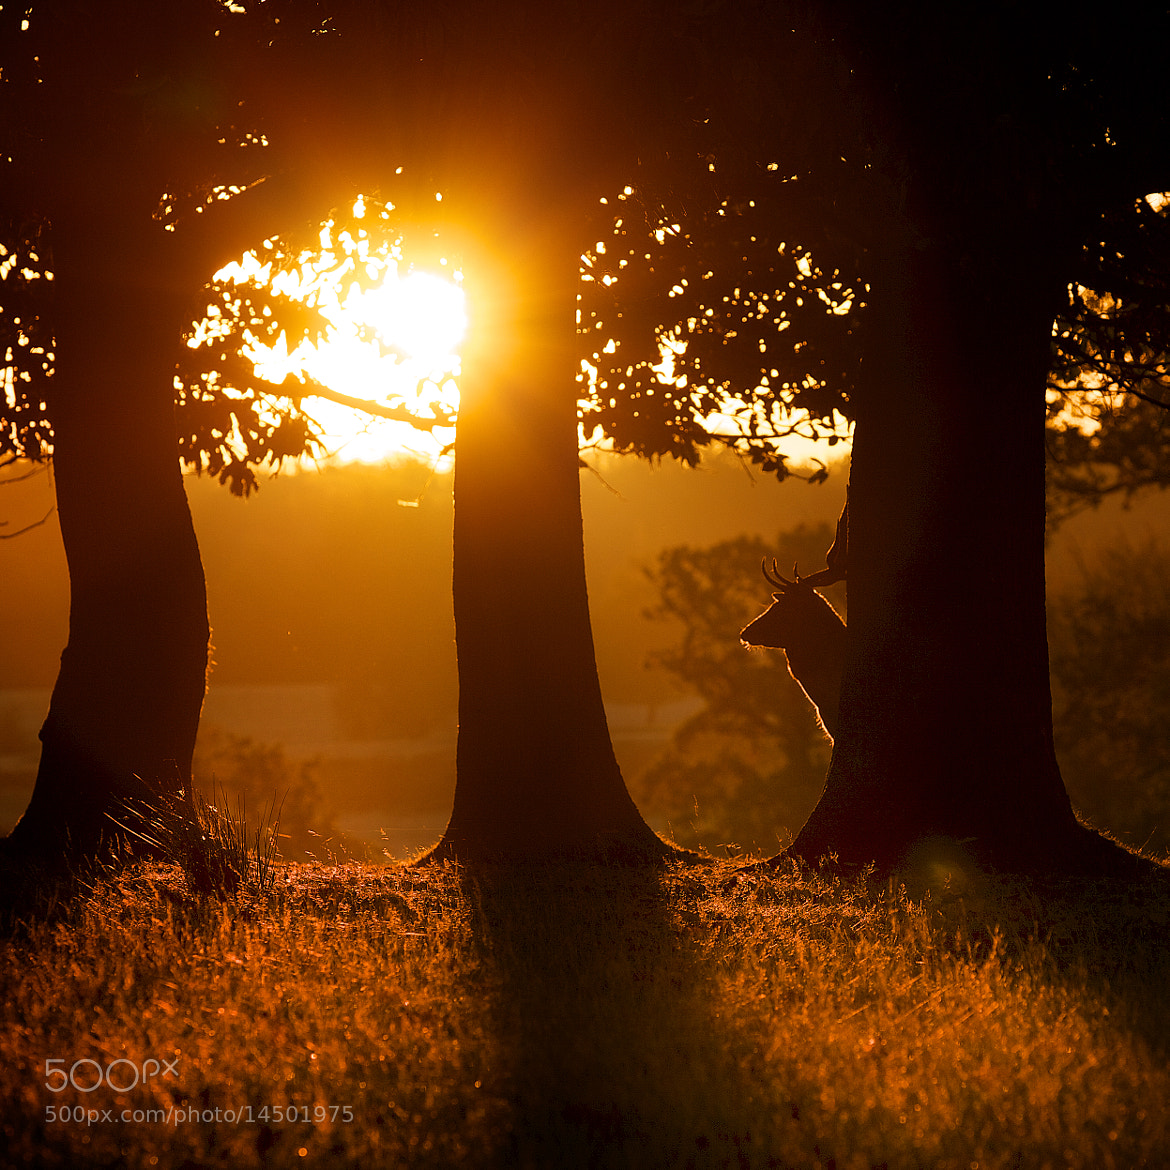 Photograph behind the tree by Mark Bridger on 500px